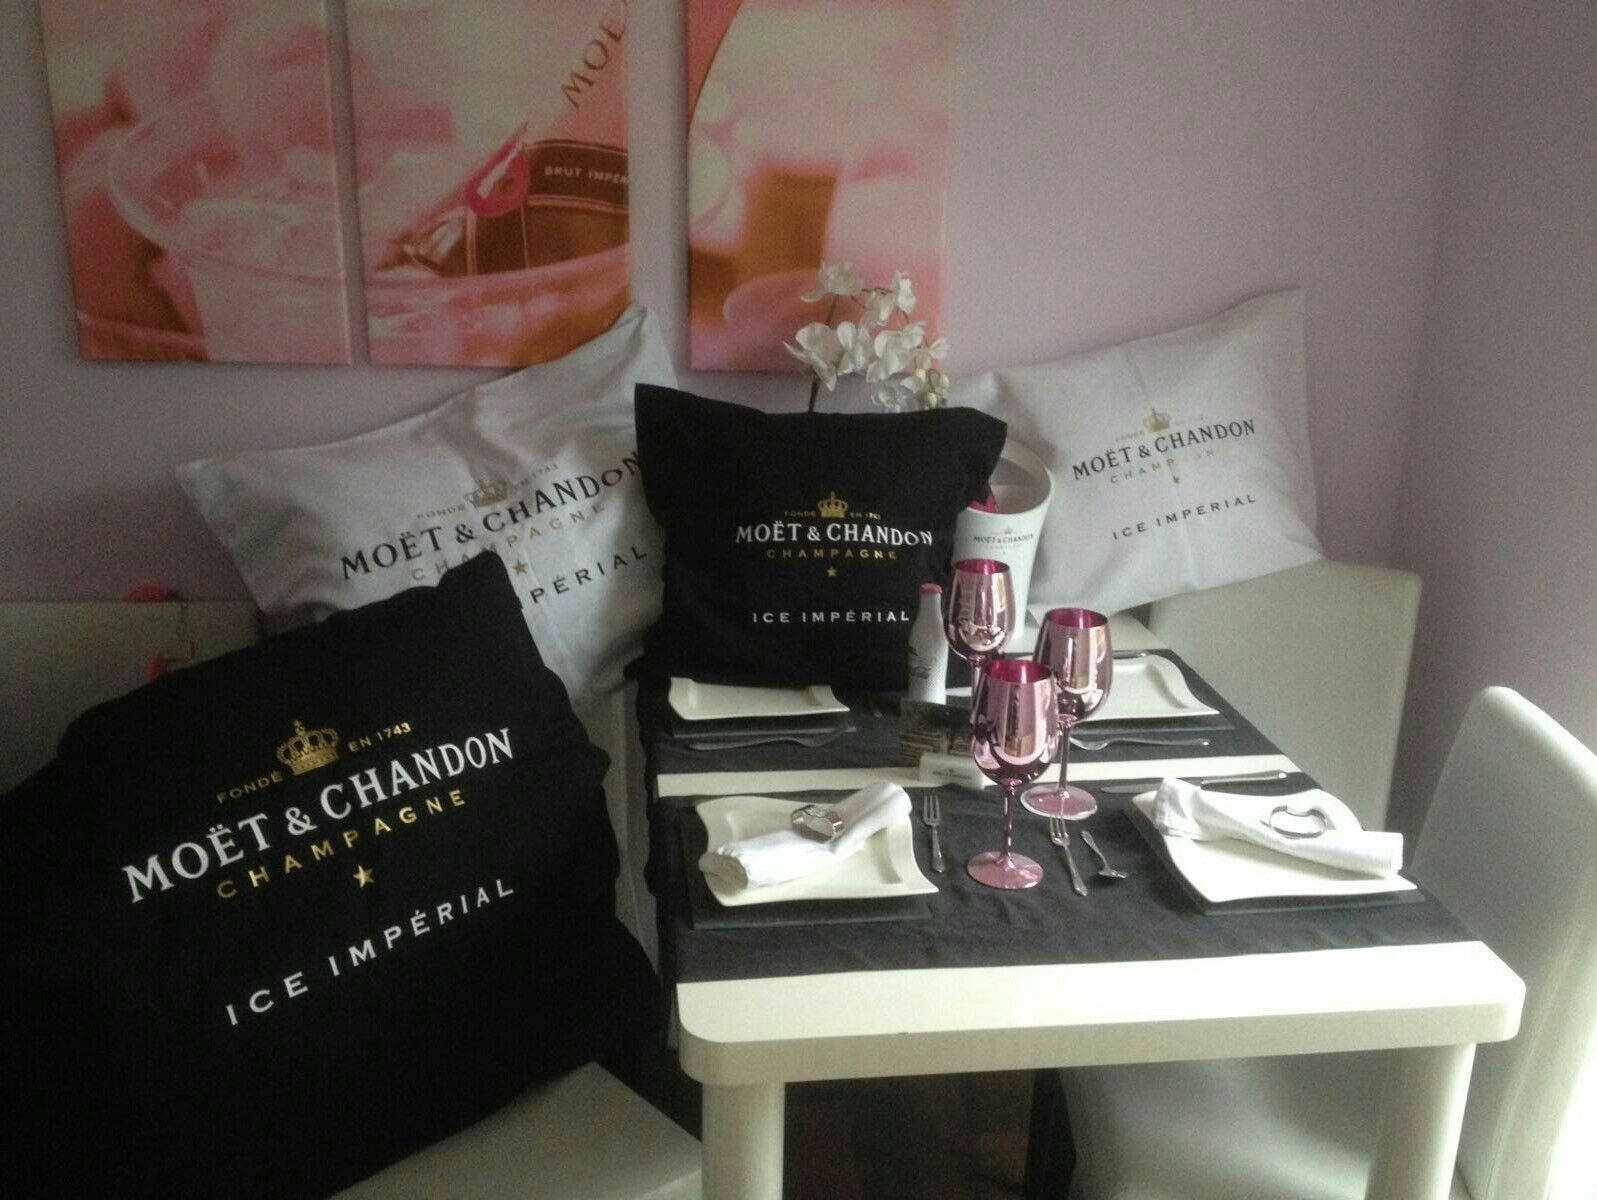 moet chandon ice imperial lounge kissen 60x60 party vip champagner schwarz neu eur 12 50. Black Bedroom Furniture Sets. Home Design Ideas